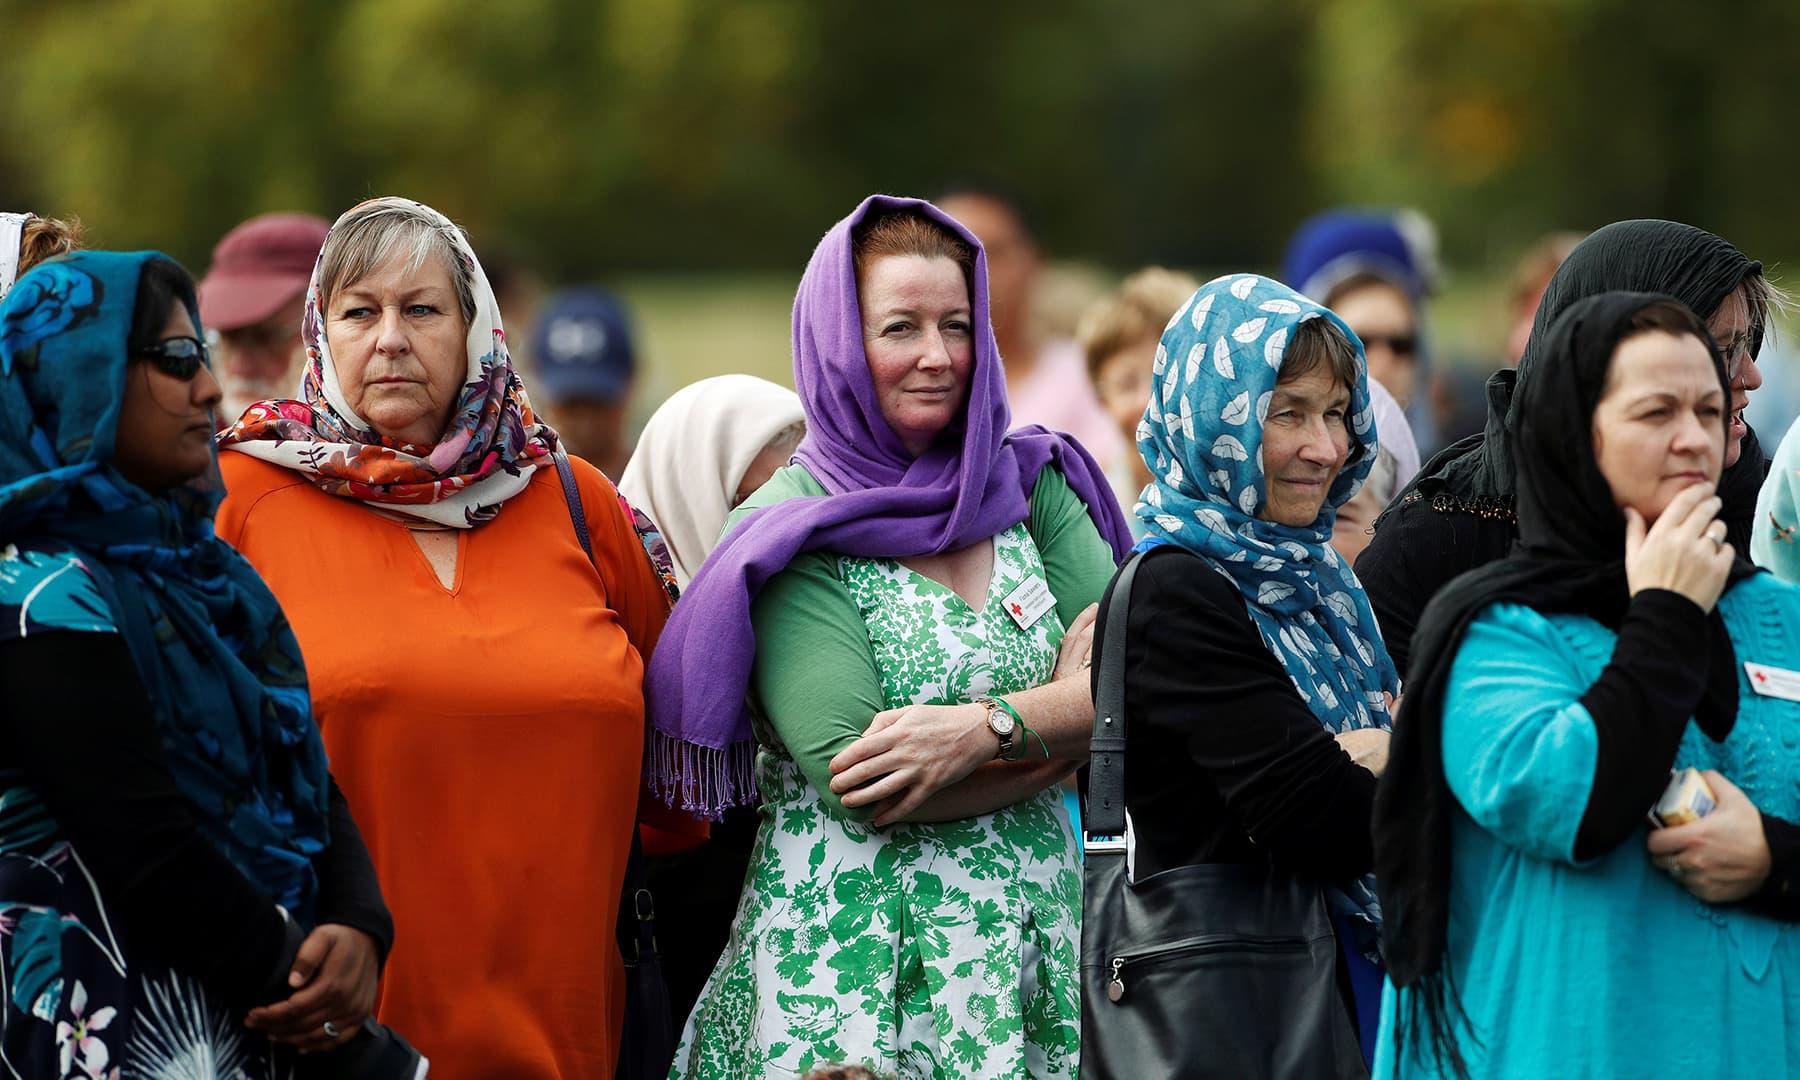 Women wearing headscarves as tribute to the victims of the mosque attacks are seen before Friday prayers at Hagley Park outside Al Noor mosque in Christchurch. — Reuters